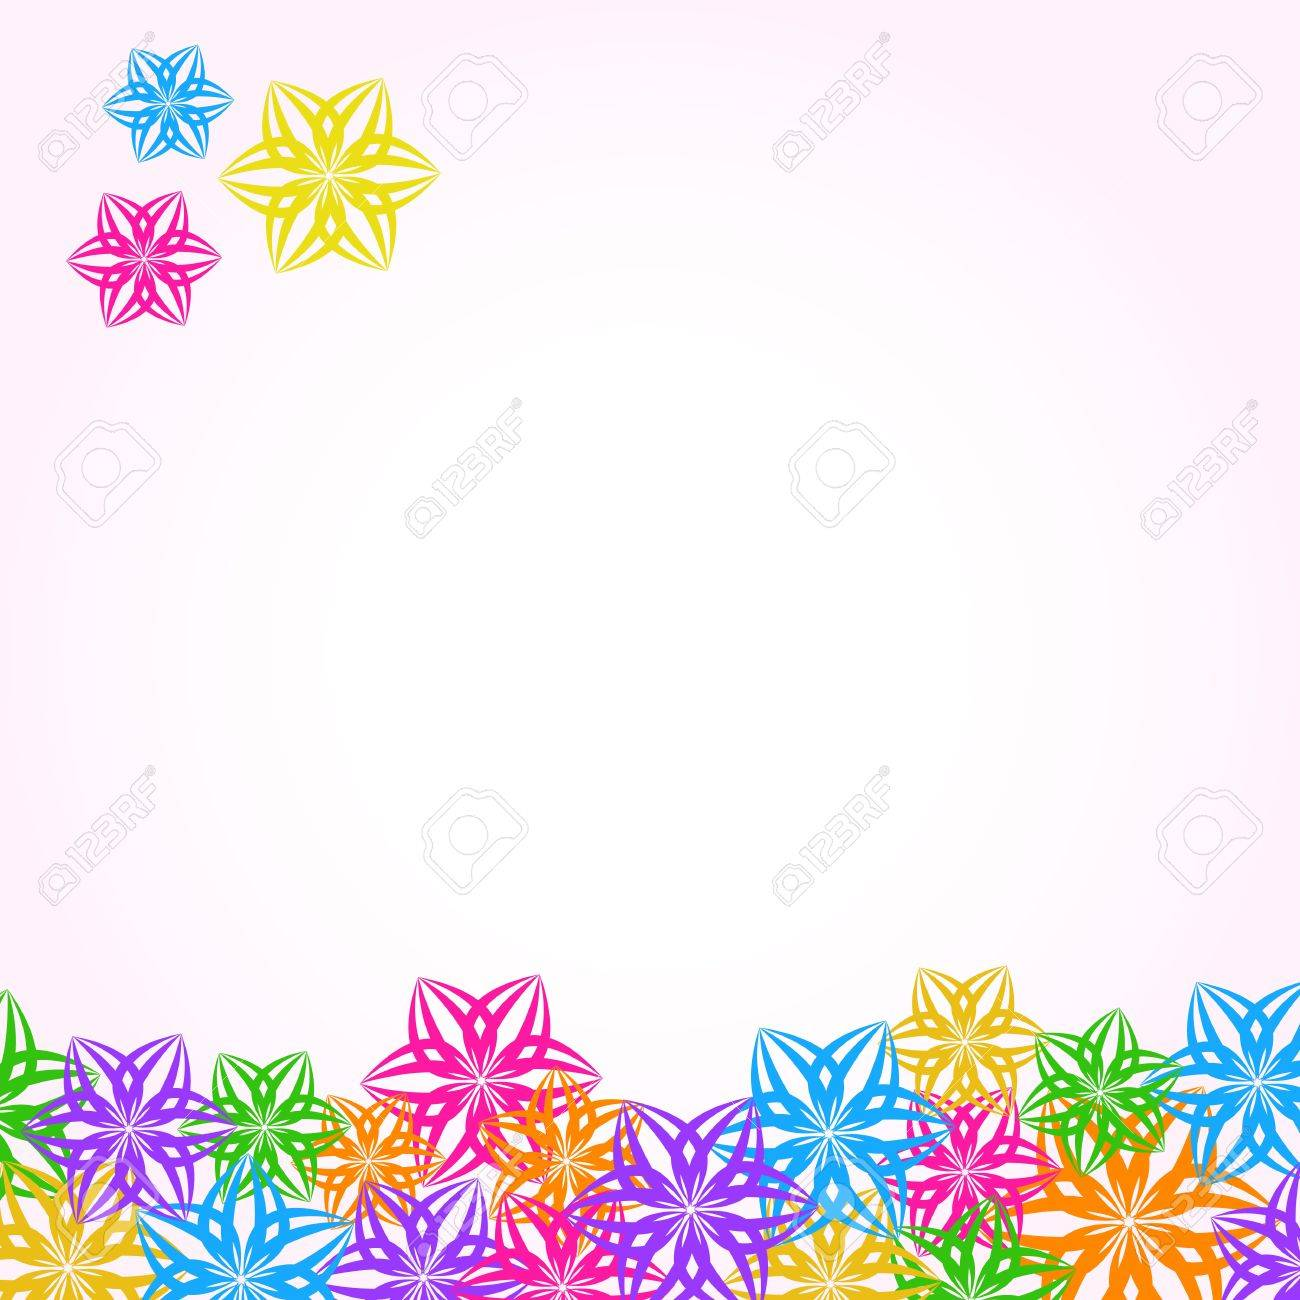 Abstract Spring Multicolored Paper Flower Invitation Card Stock Vector - 19395737